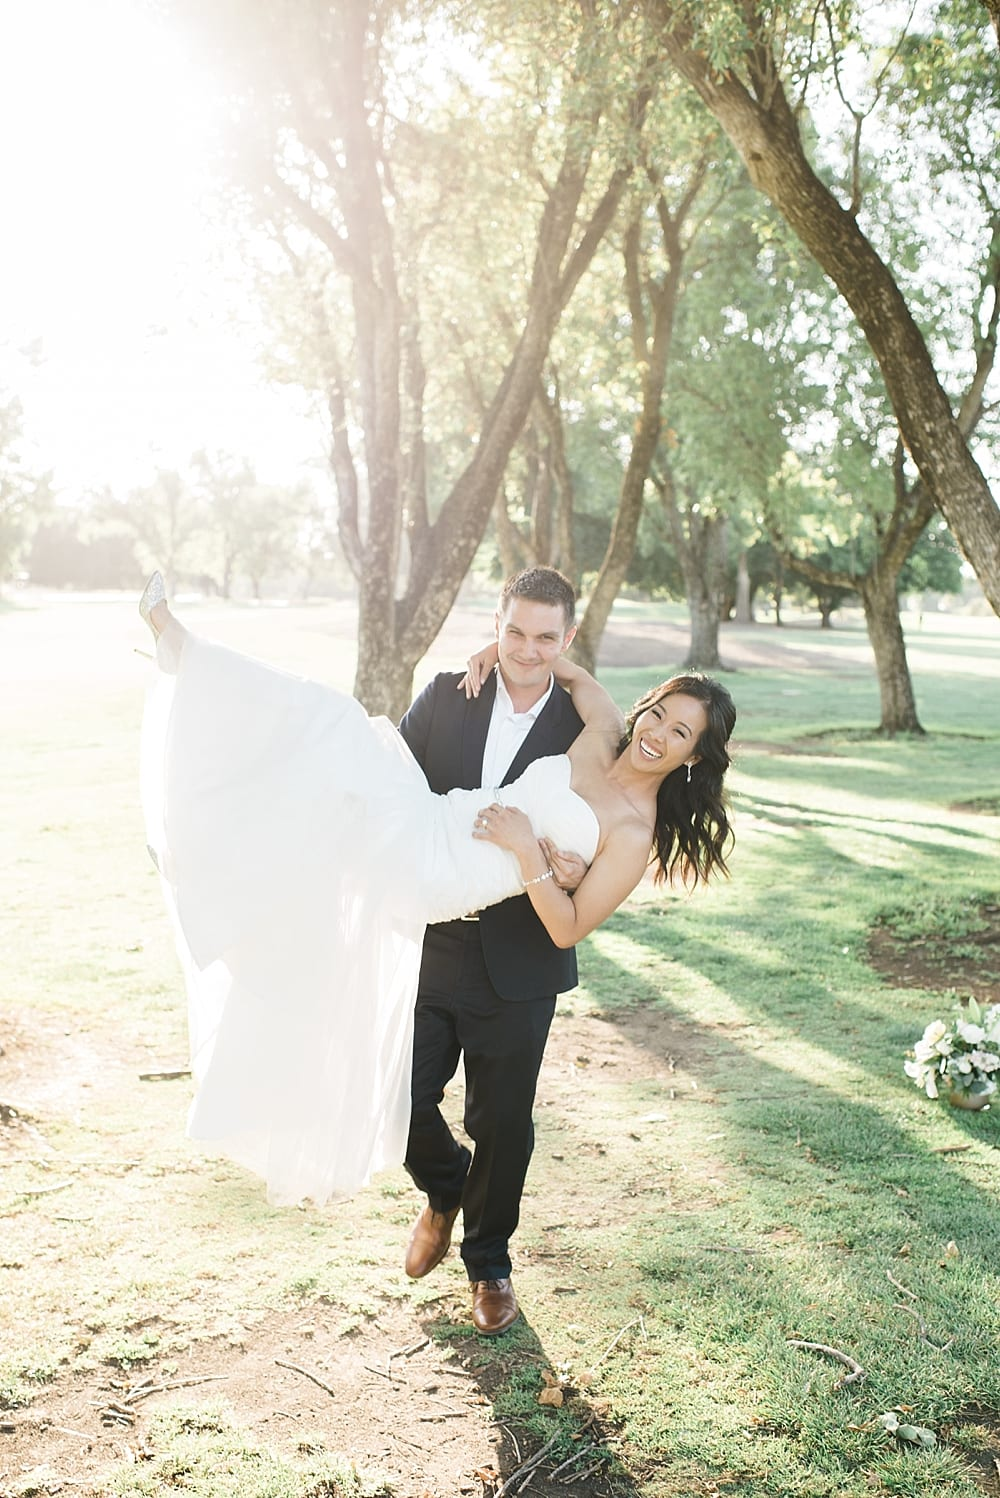 Los-Robles-Greens-Wedding-Photographer-Carissa-Woo-Photography_0051.jpg